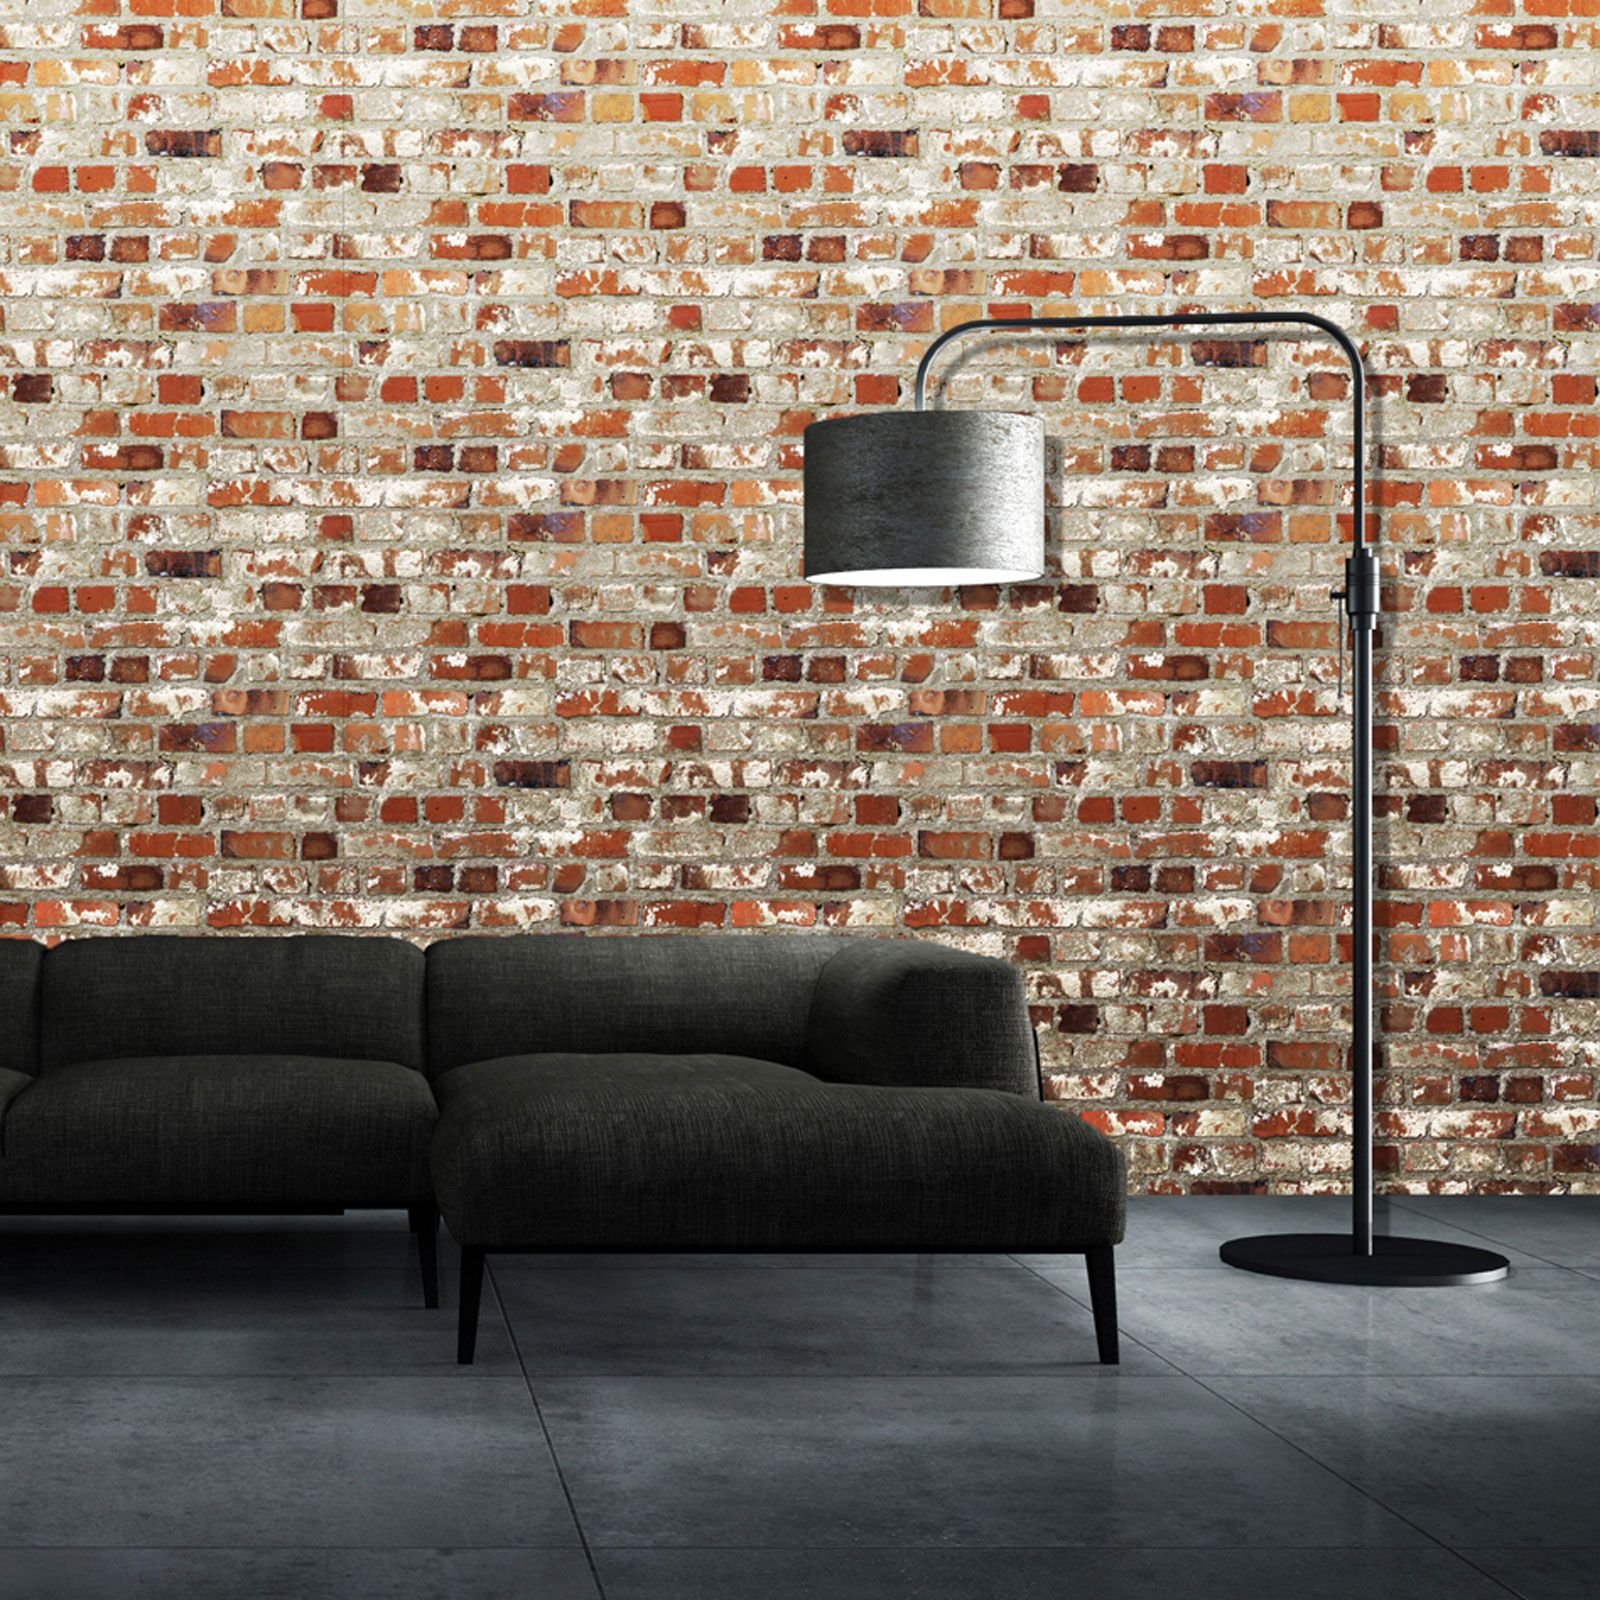 Kids Rooms Decorating Ideas Red Brick Wallpaper: RED BRICK EFFECT REALISTIC WALLPAPER ROOM DECOR FEATURE